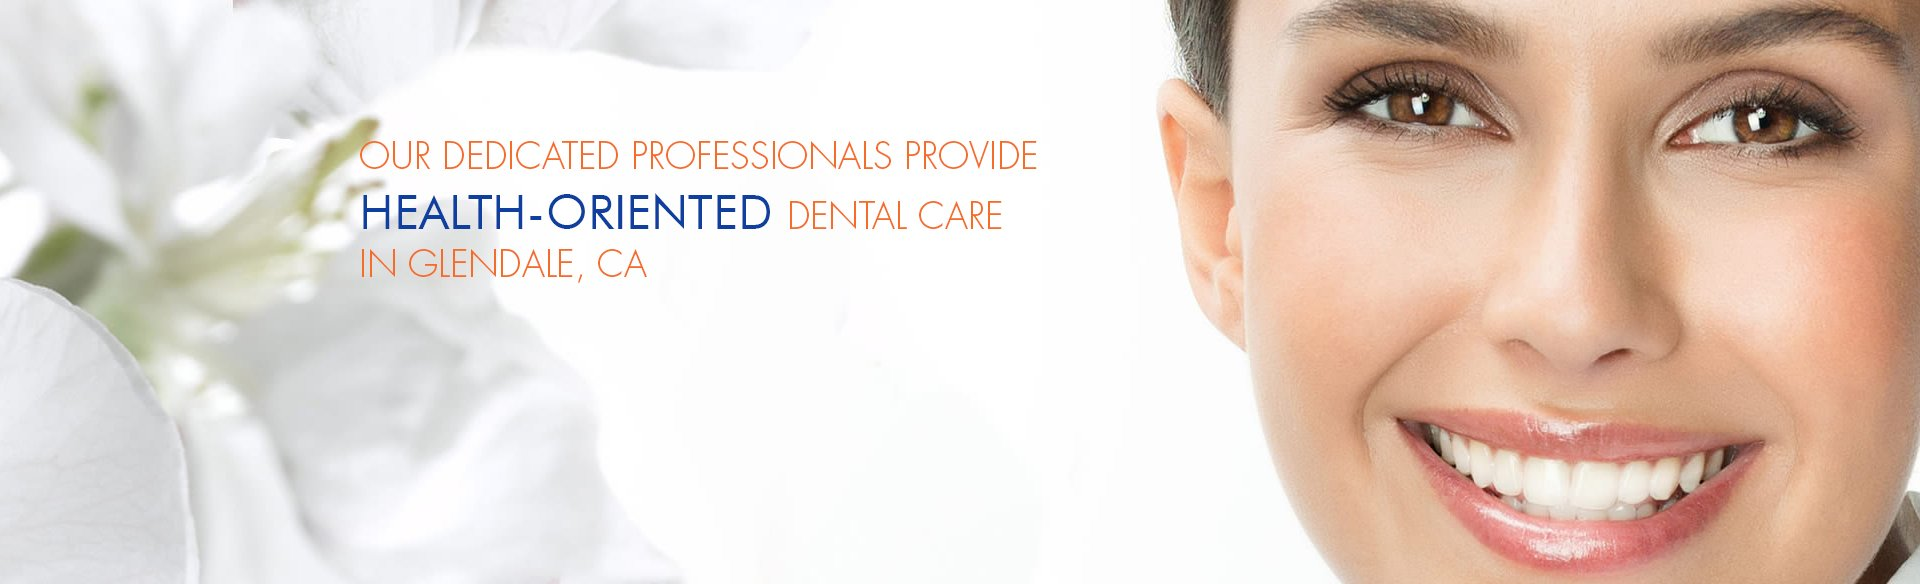 Dr. Carlos Garcia, Bright Smiles Dental Studio Image Of Our Dedicated Professionals Provide health-Oriented Dental Care